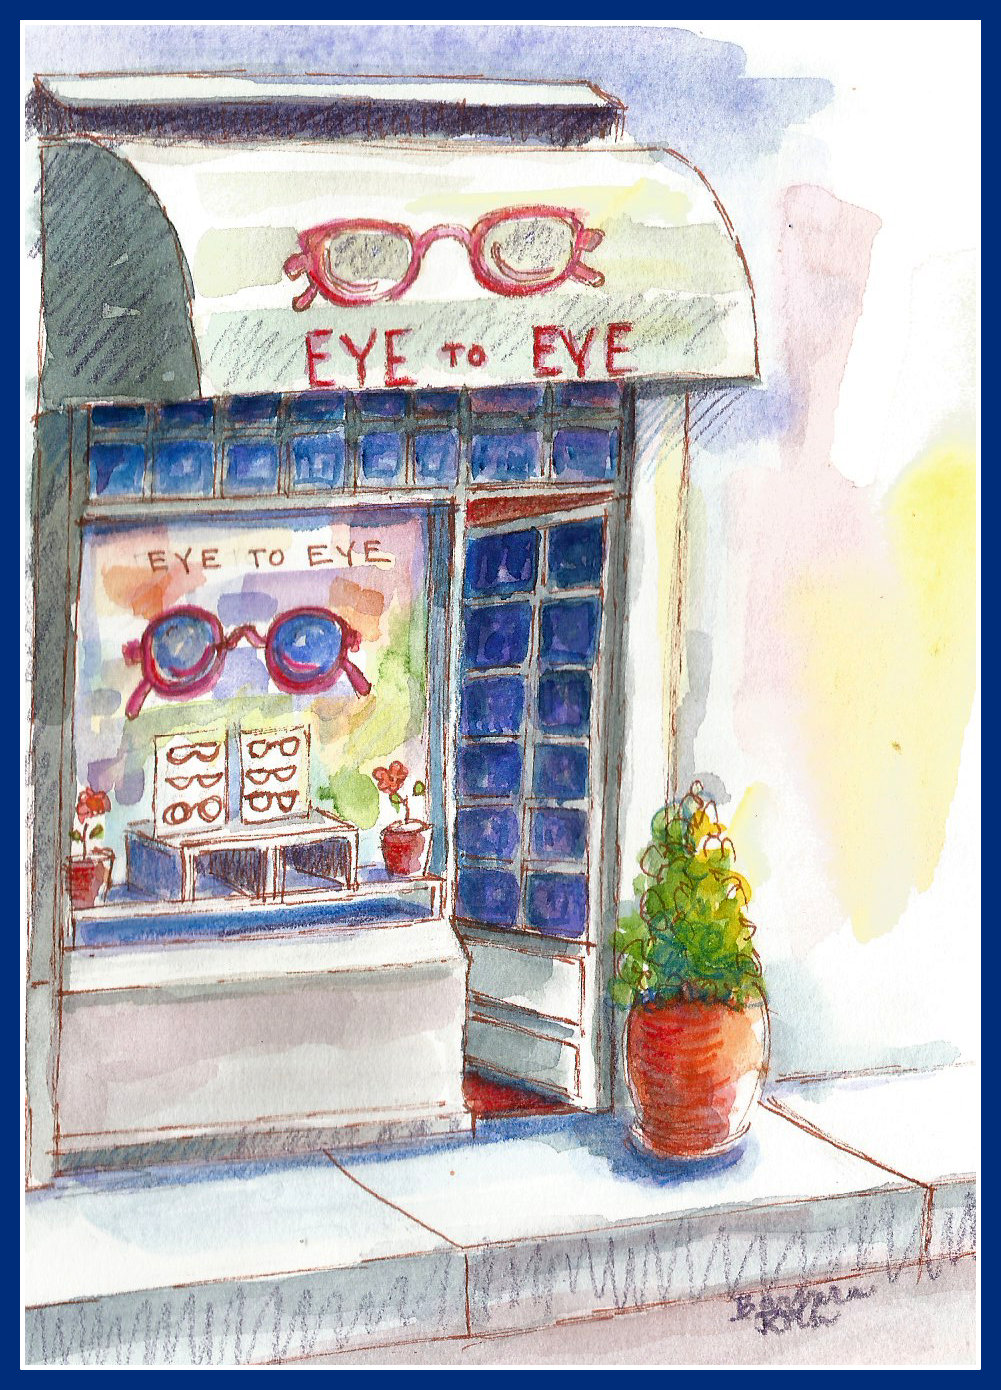 Painting of a Paris Eye Glass Shop by Barbara Roth, inspired by we don't really know......................